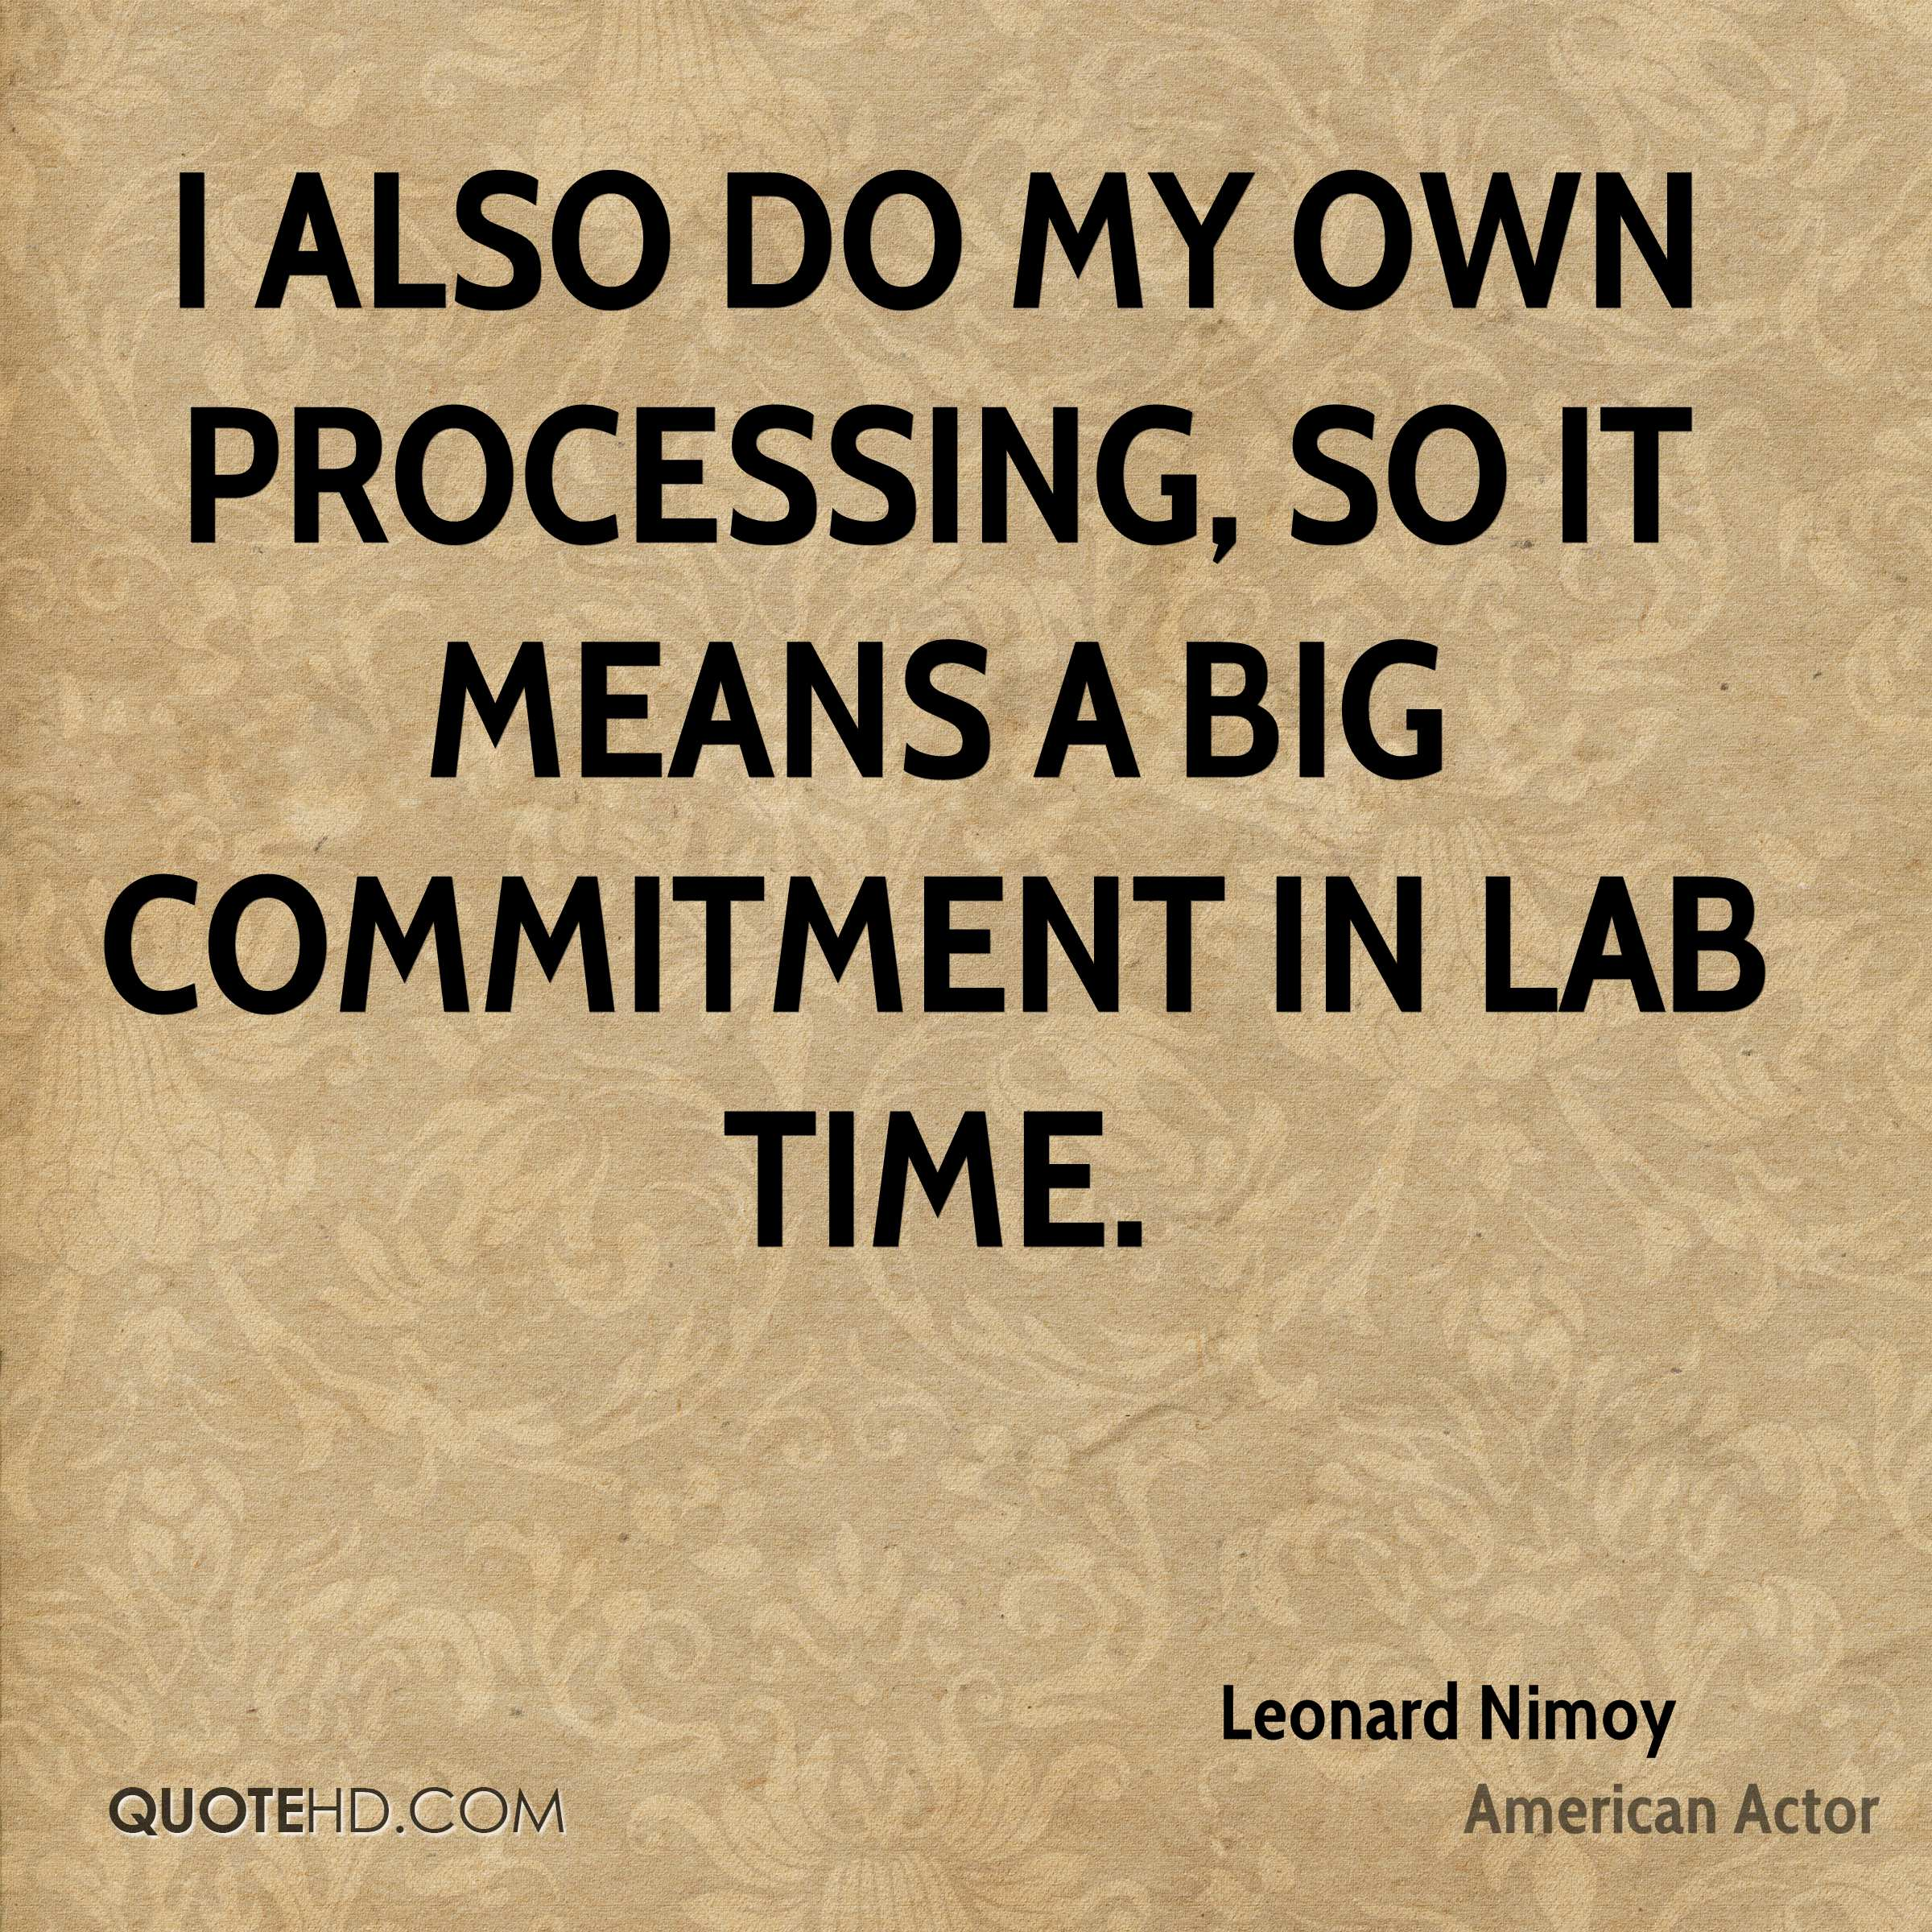 I also do my own processing, so it means a big commitment in lab time.